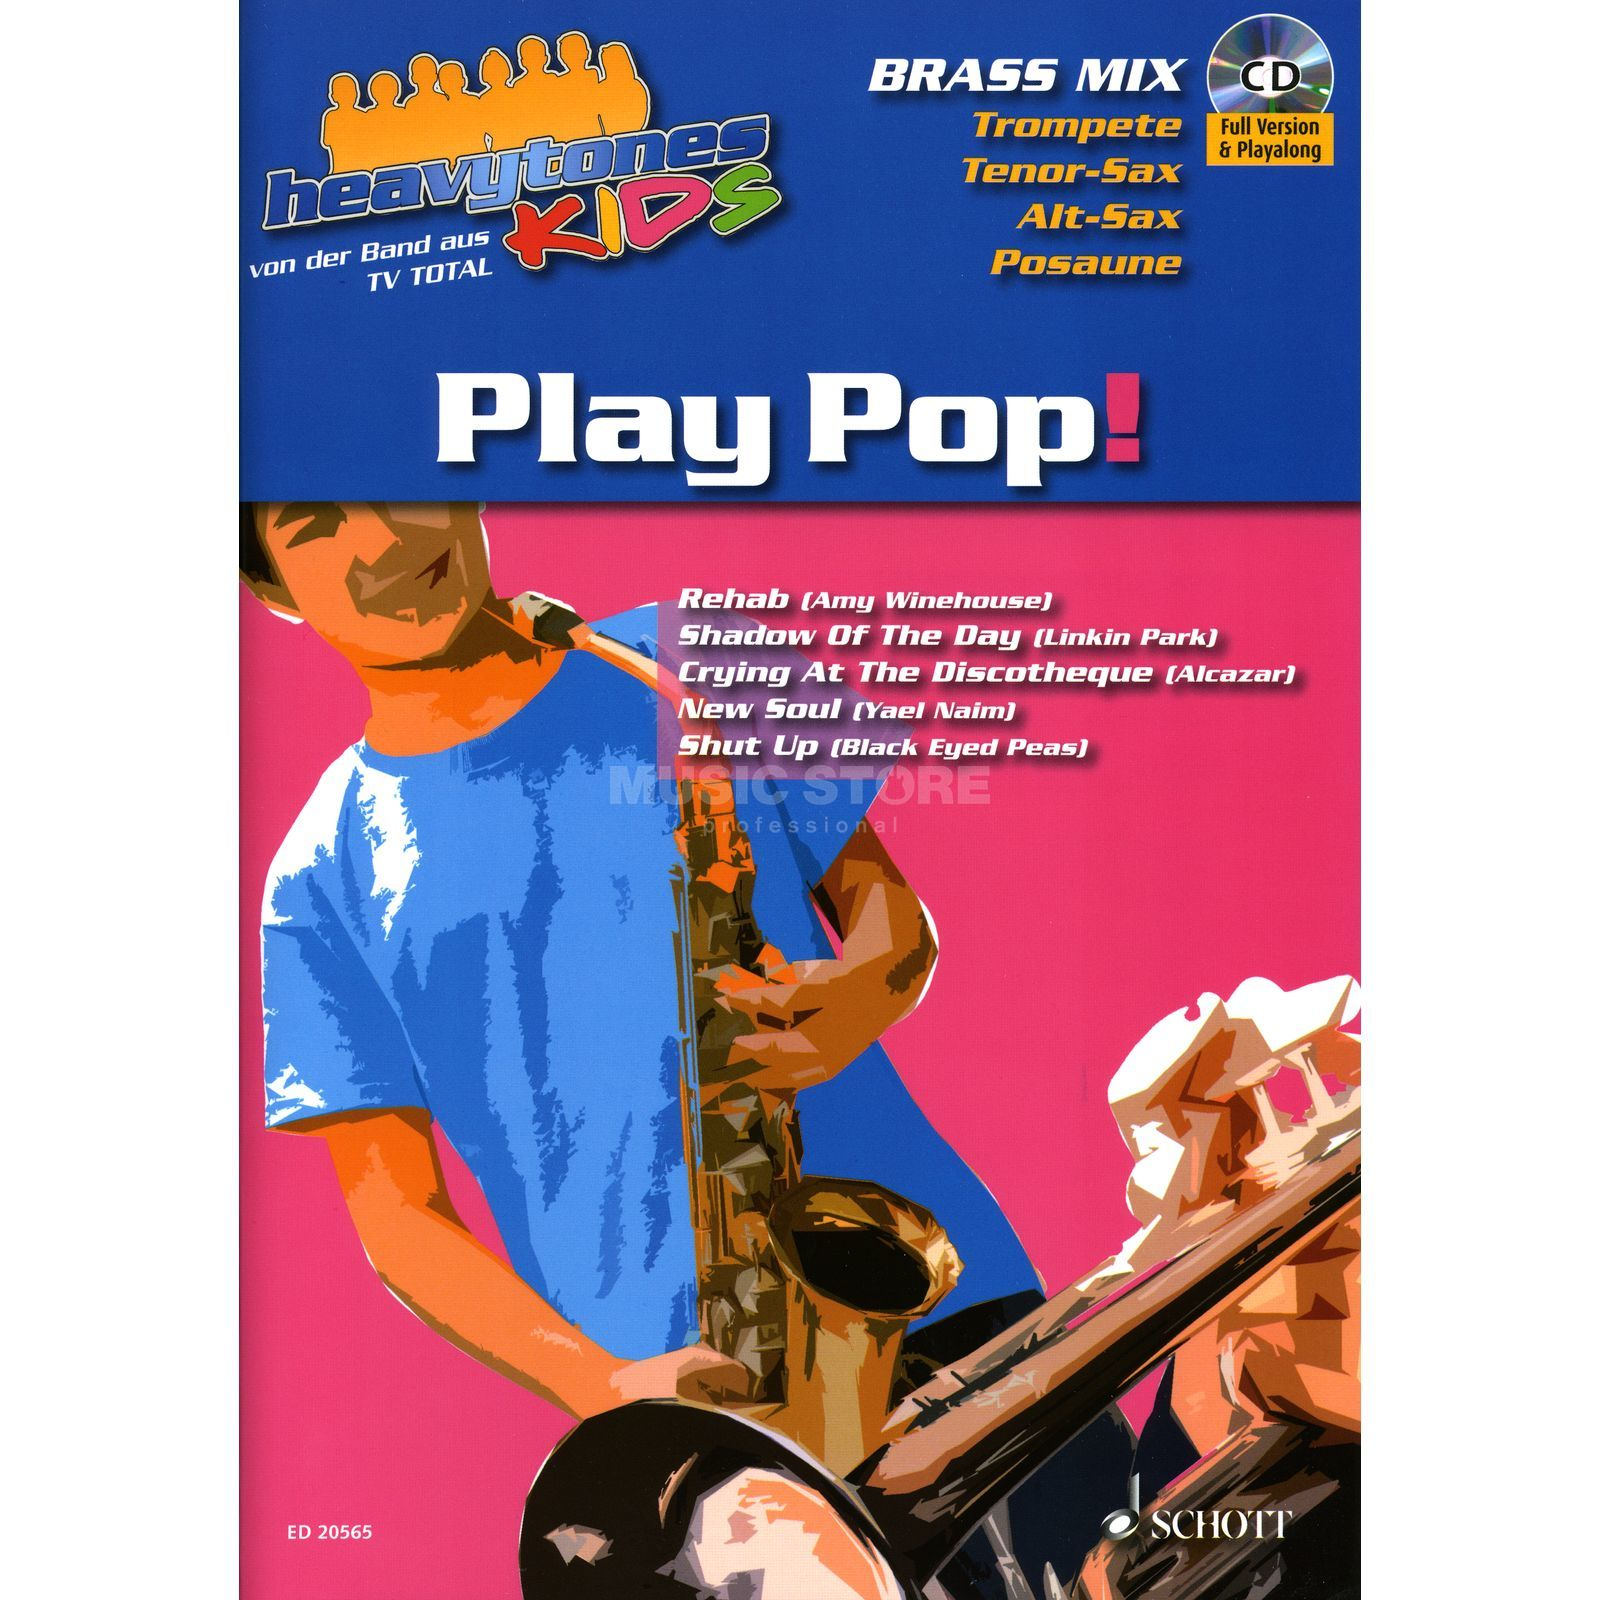 Schott-Verlag Heavytones Kids - Brass Mix Play Along Sax, Posaune, Tromp Produktbild